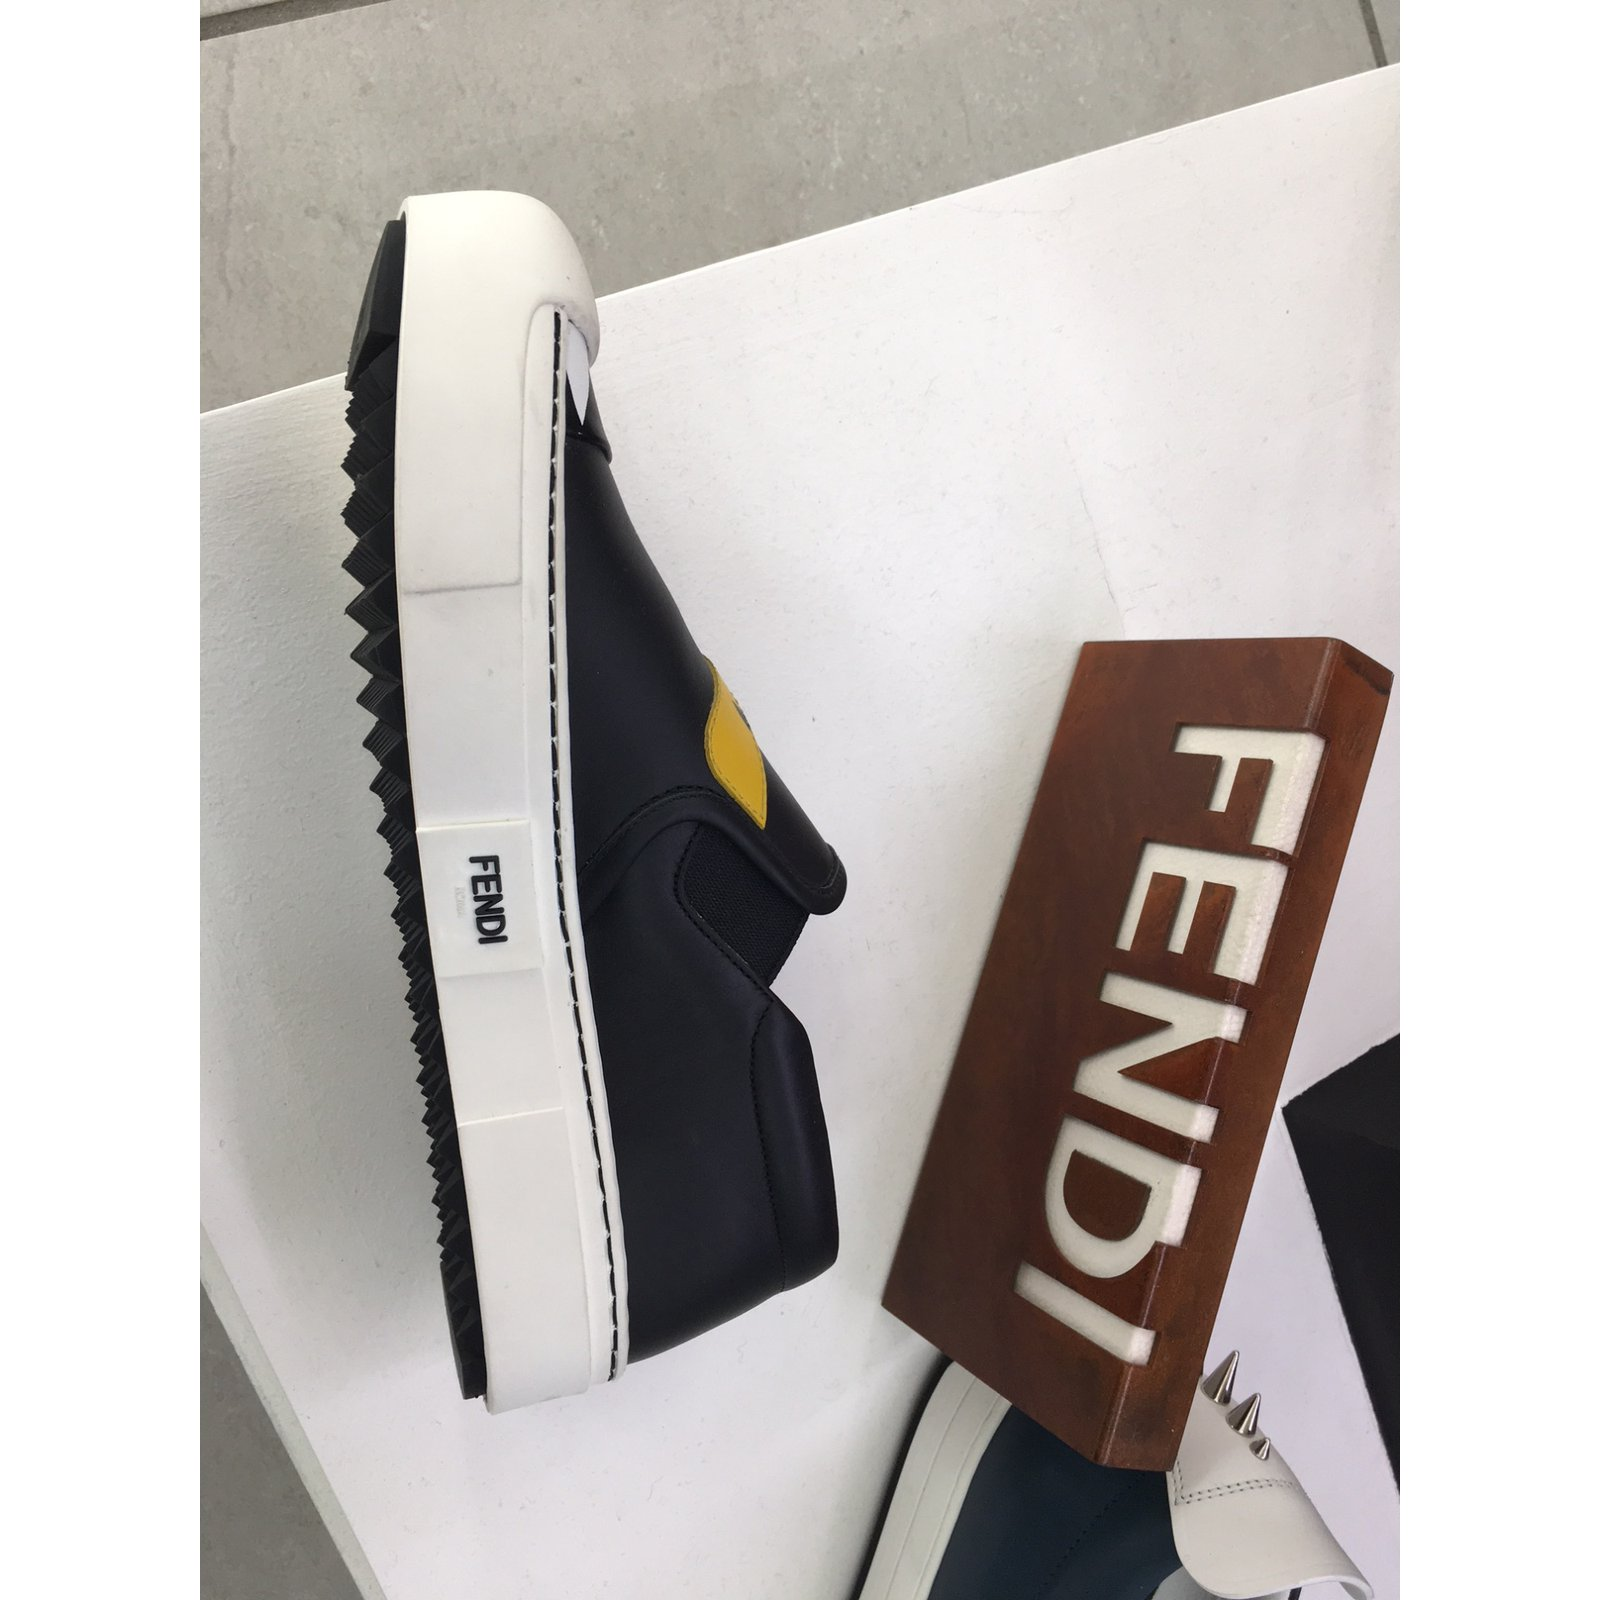 d42022cb6d9 Fendi Fendi shoes new more size Flats Leather Multiple colors ref.56011 -  Joli Closet